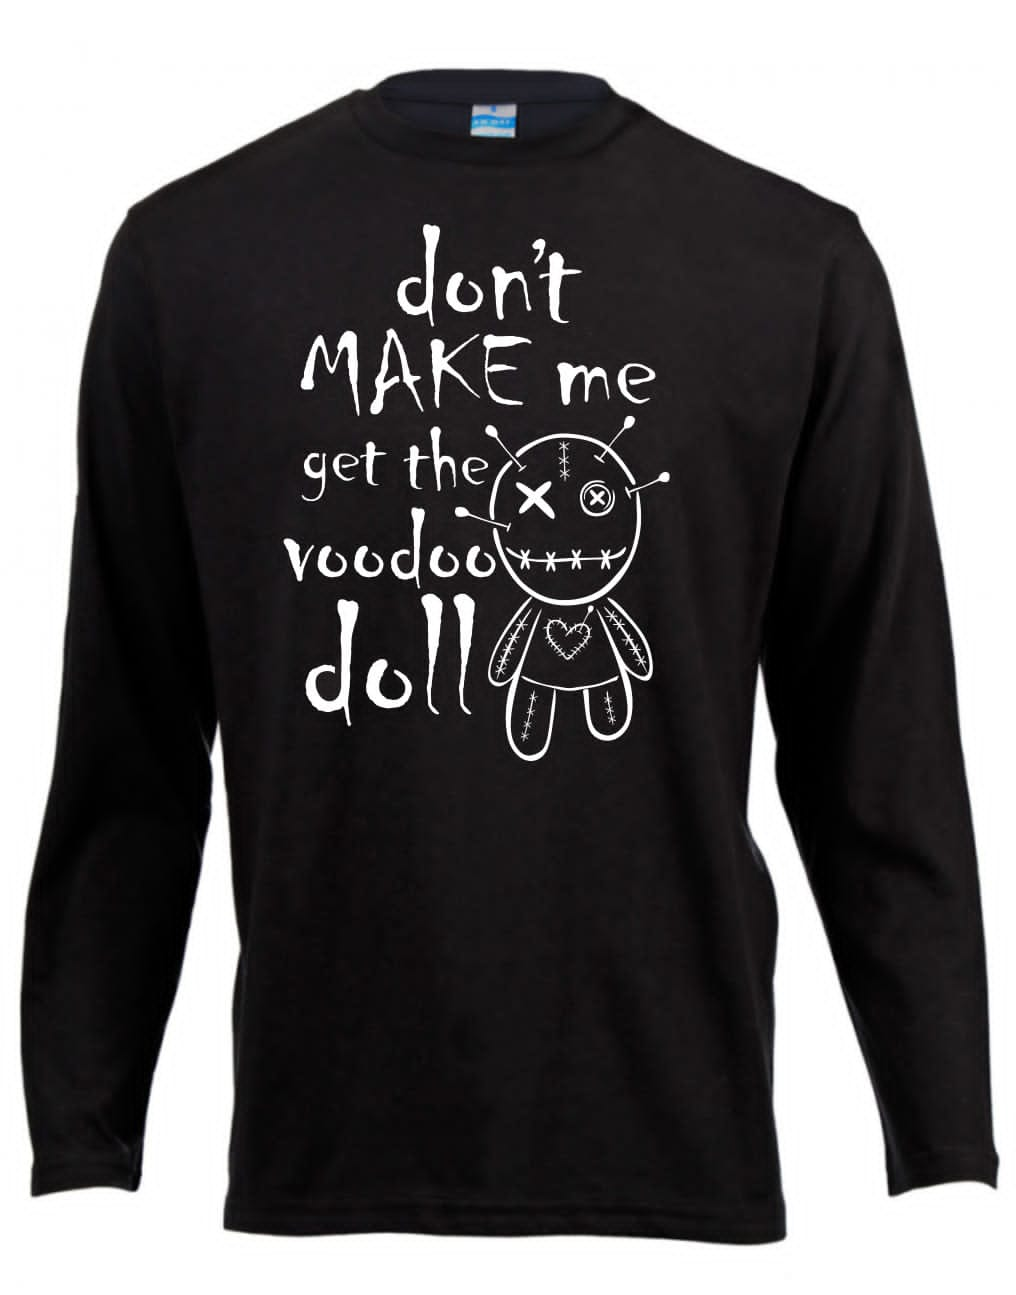 Voodoo Doll Long Sleeve Shirt ↠ White On Black